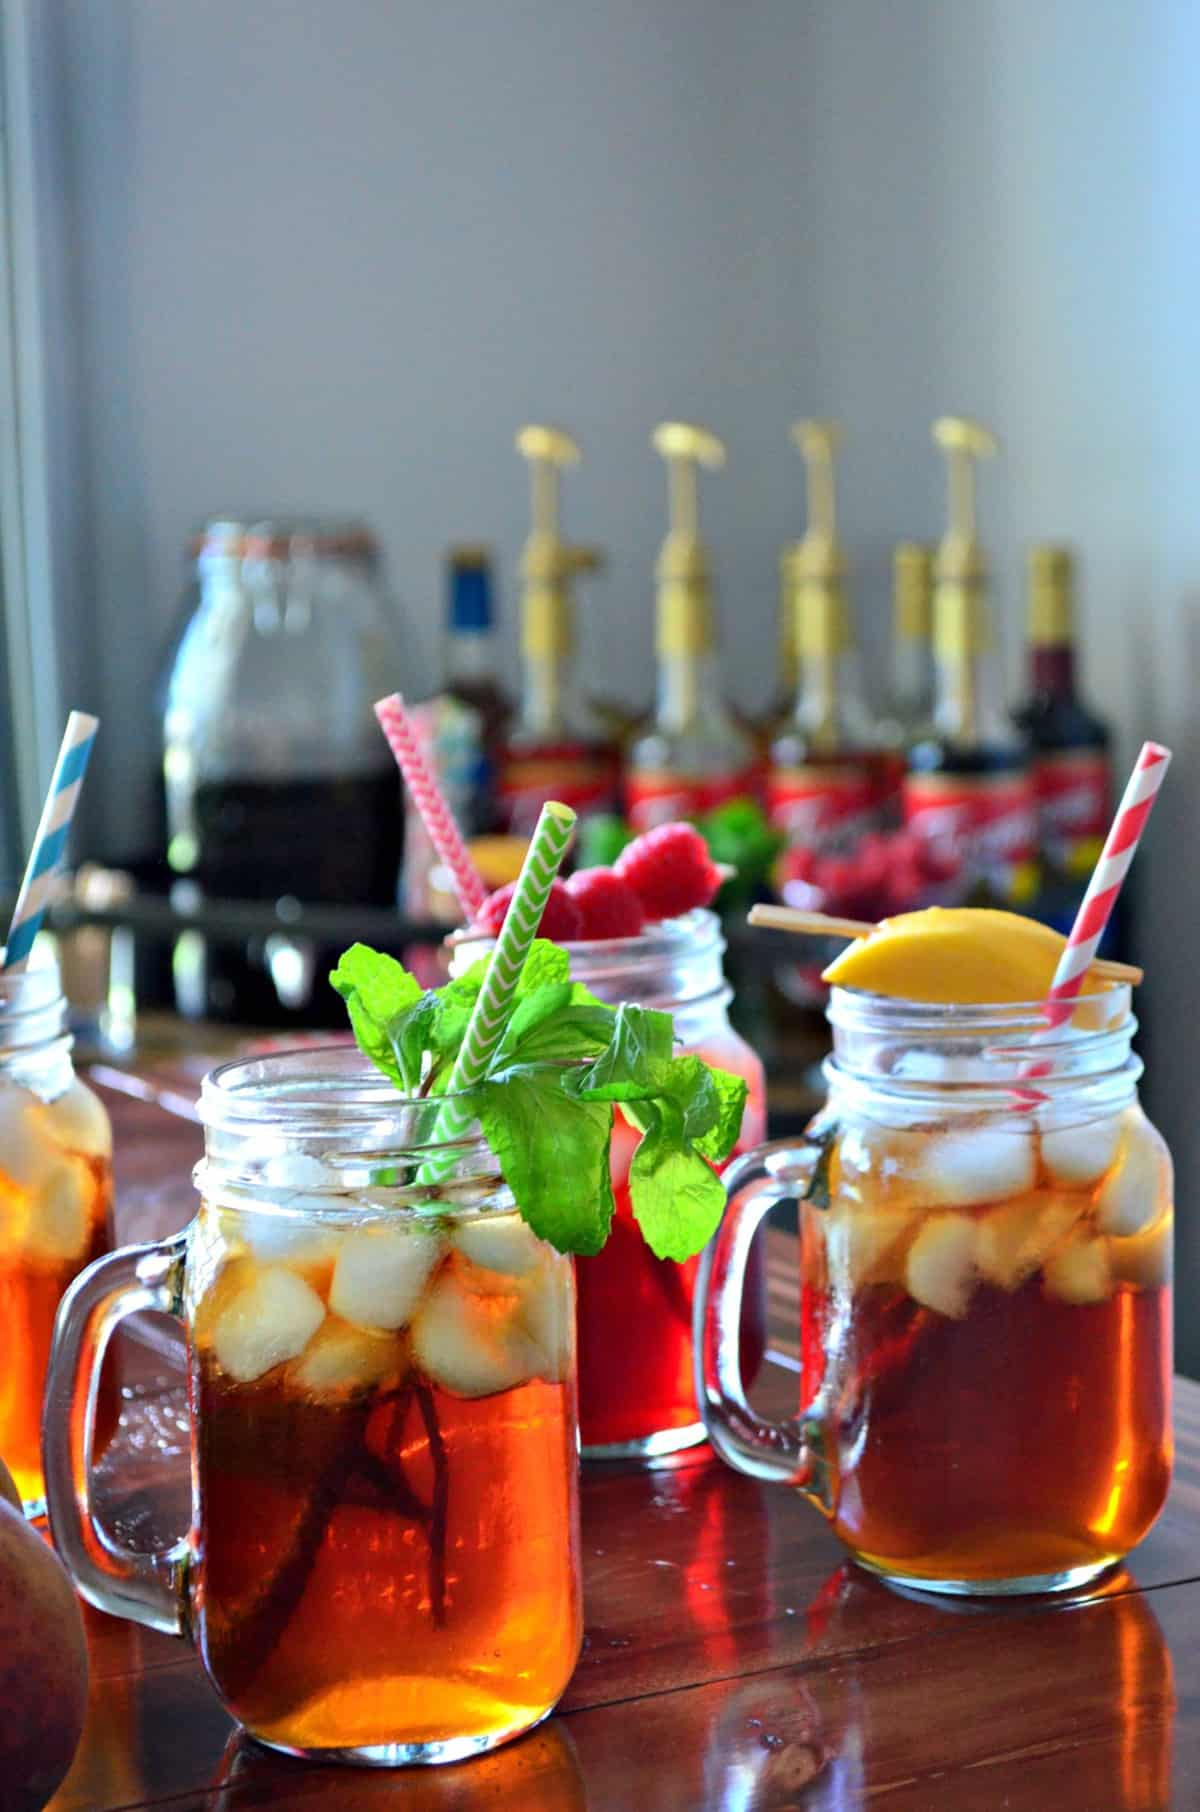 3 glass jars of iced tea, each garnished with a different item like peaches, raspberries, and mint.